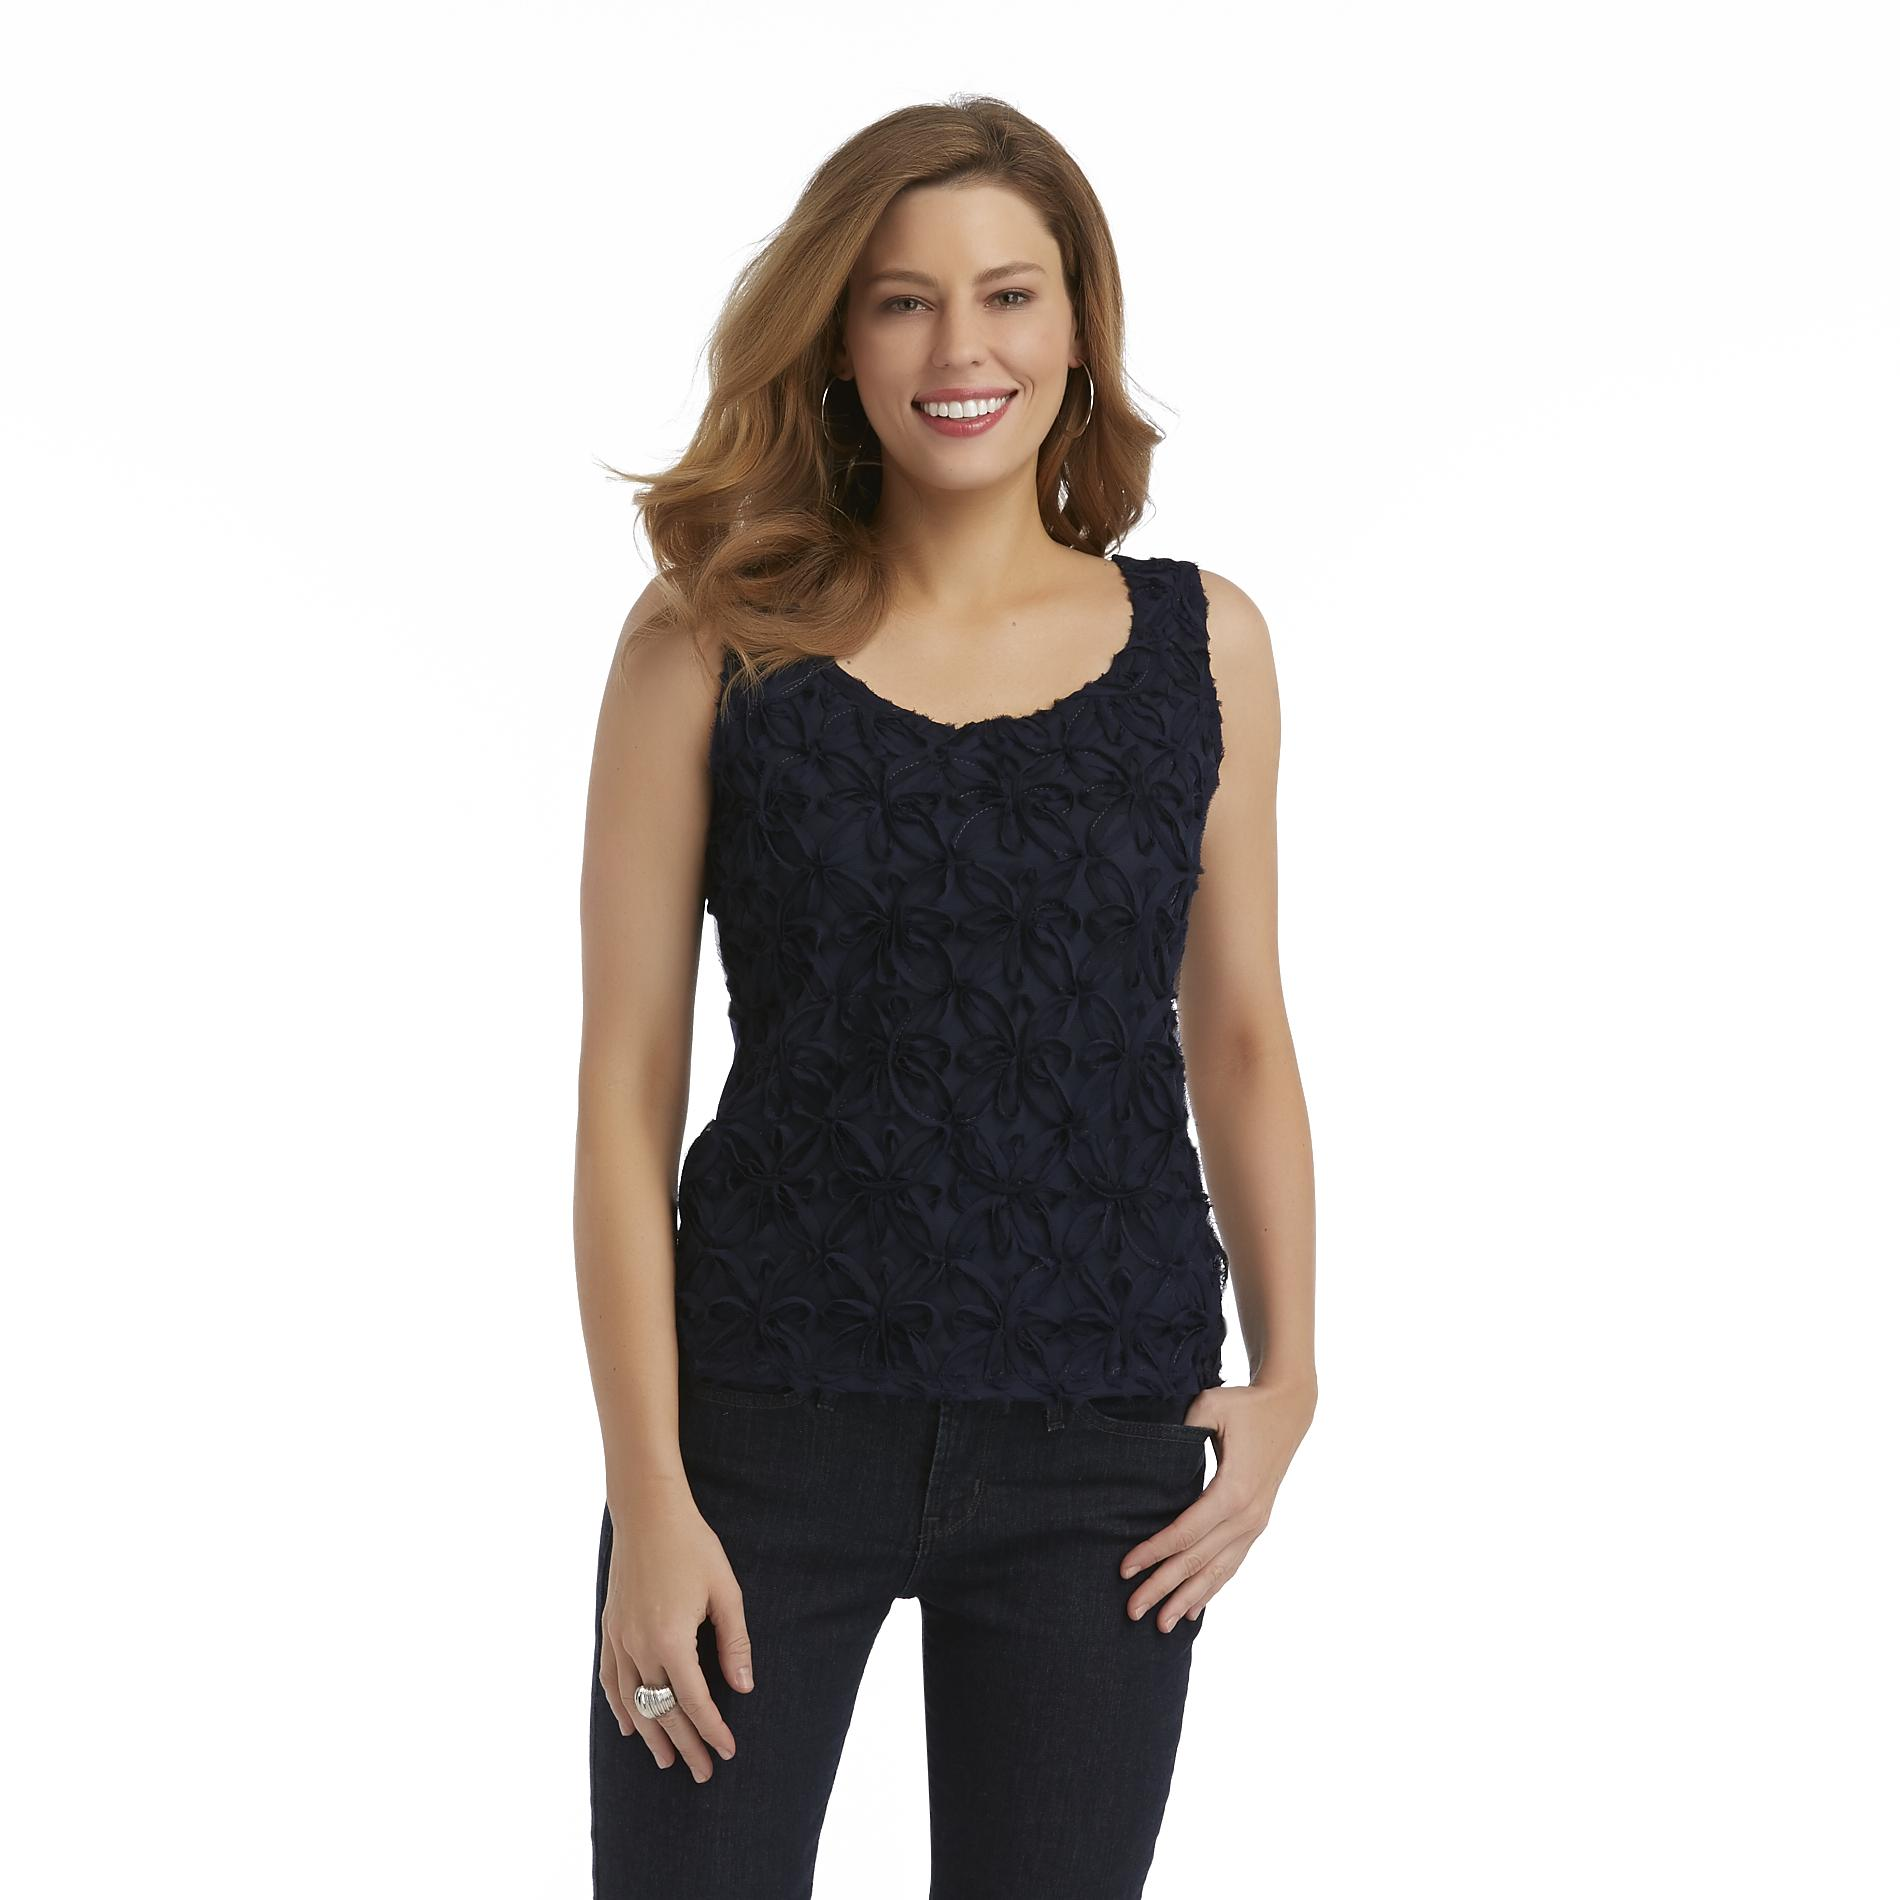 Grisbi Women's Scoop Neck Tank Top at Sears.com